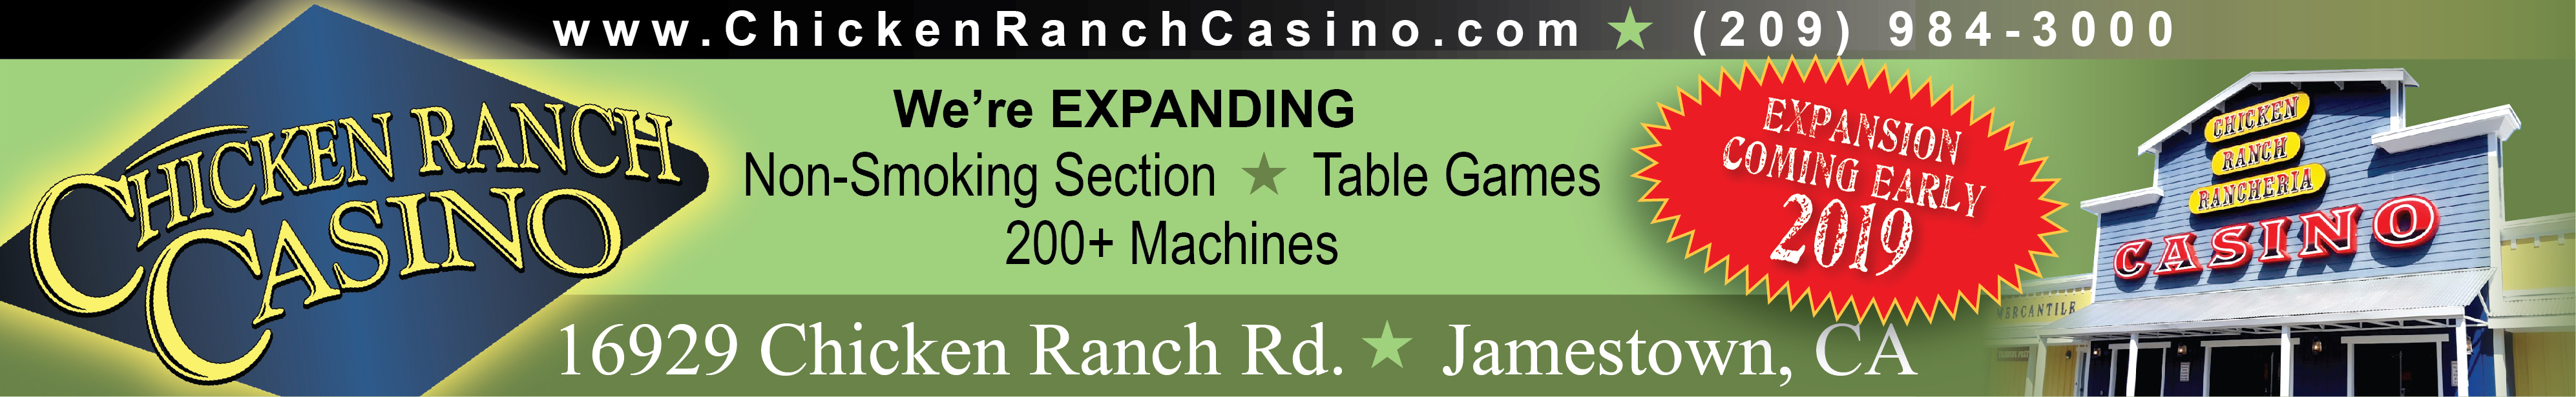 Chicken Ranch Casino - 2018 - 1 - Banner - Football - Top